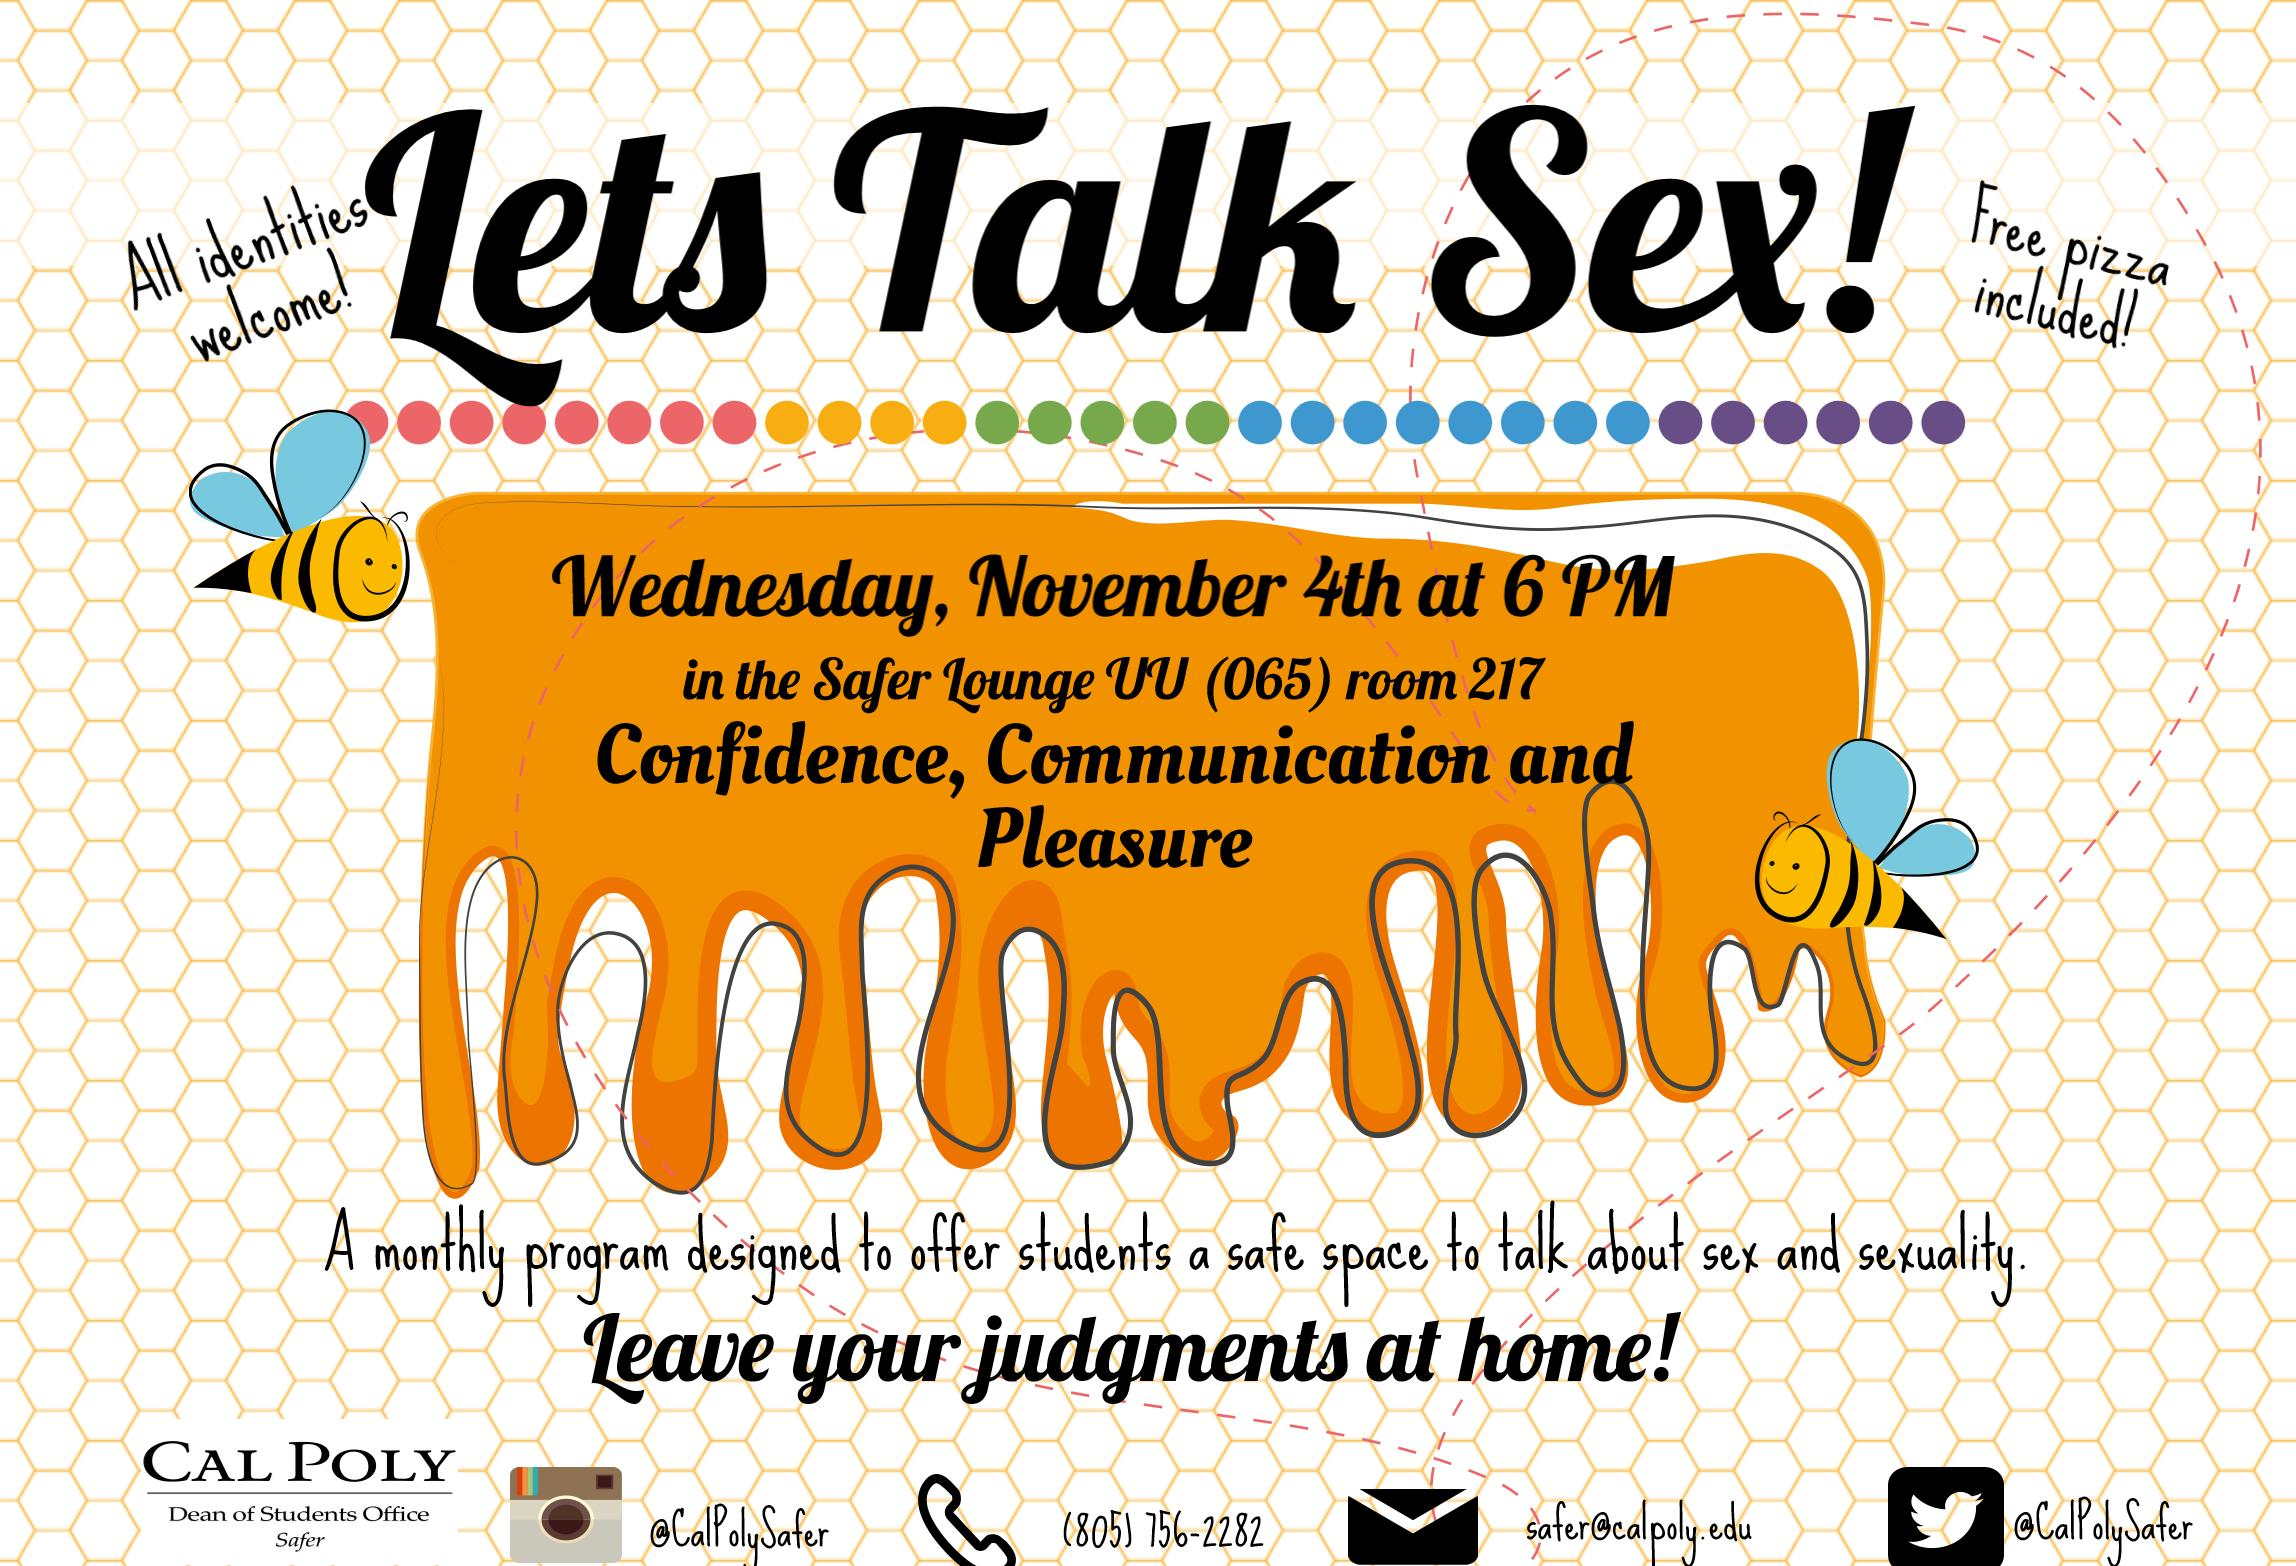 Lets Talk Sex! All identities welcome! Free pizza included! A monthly program designed to offer students a safe space to talk about sex and sexuality. Wednesday, November 4th at 6pm in the Safer Lounge, UU 217. Confidence, Communication, and Pleasure. Leave your judgement at home!